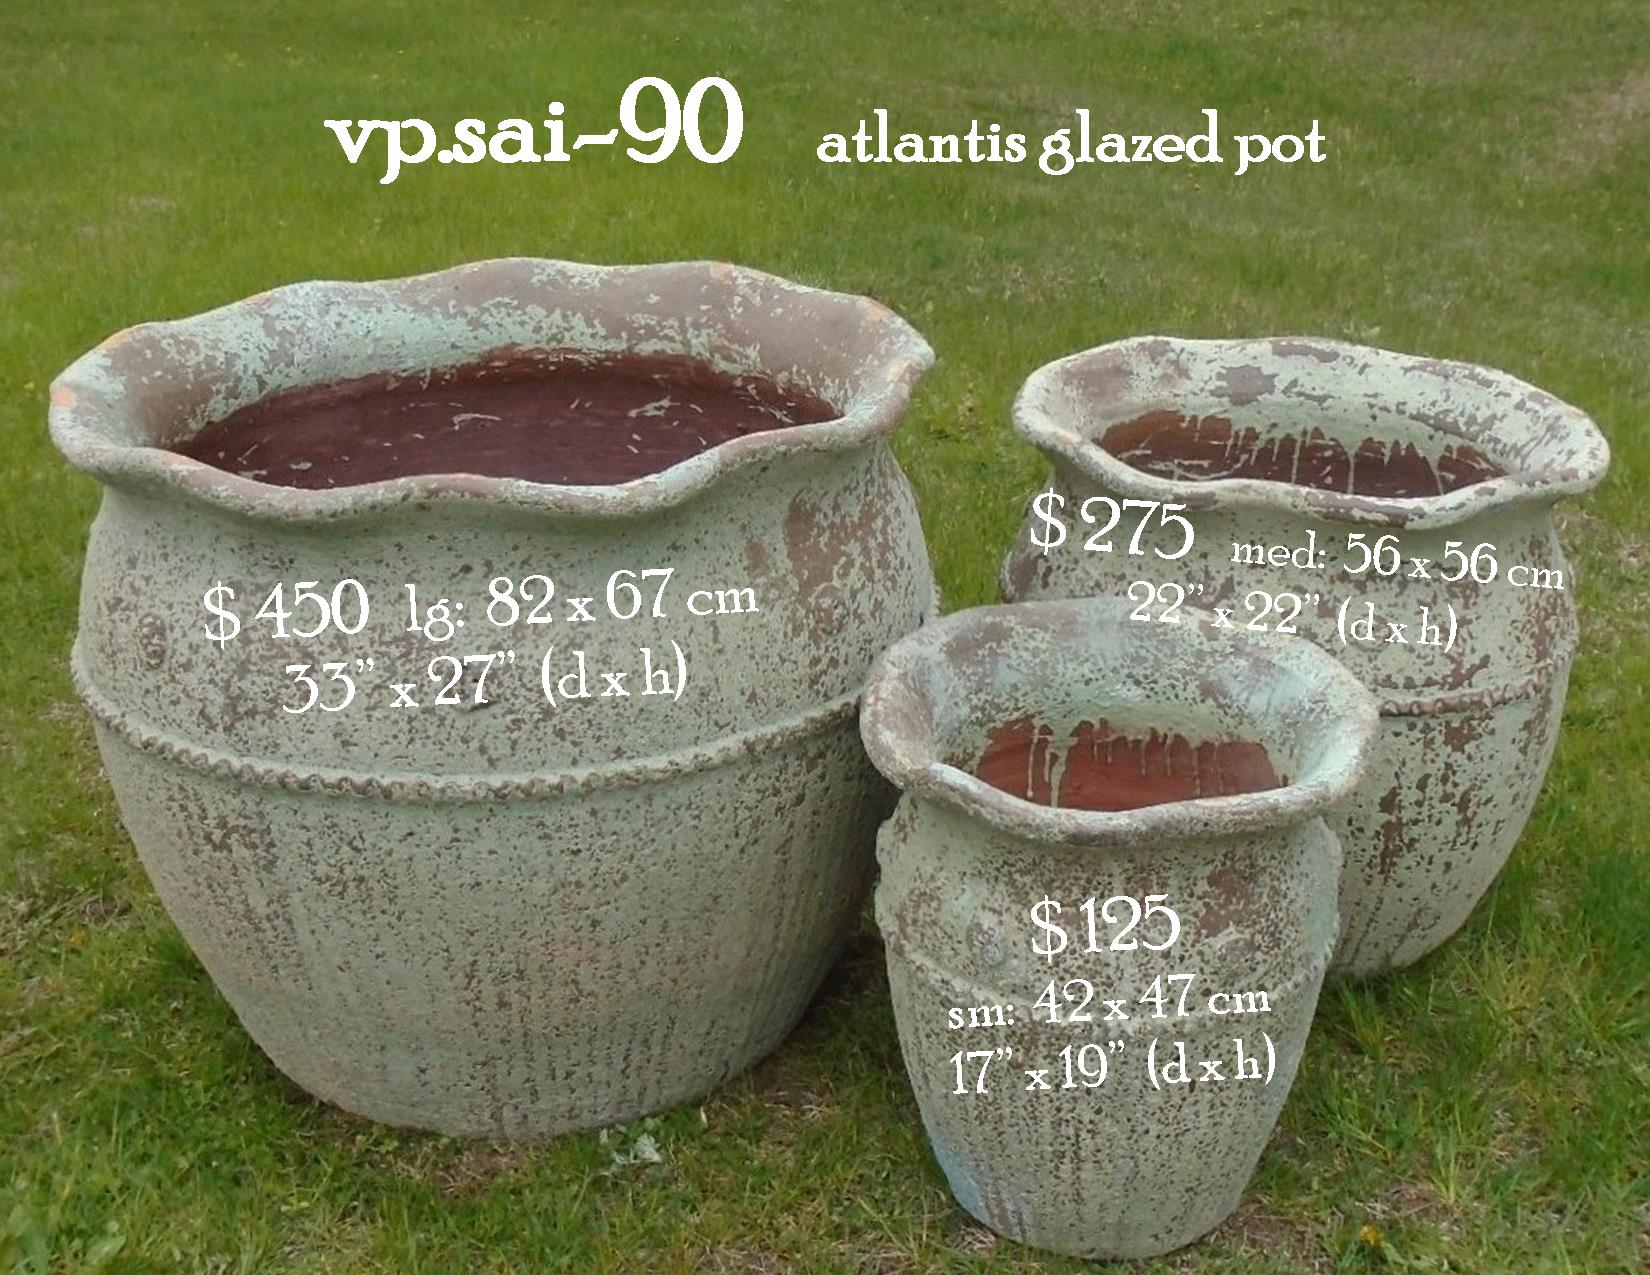 vp.sai-90    atlantis glazed pot